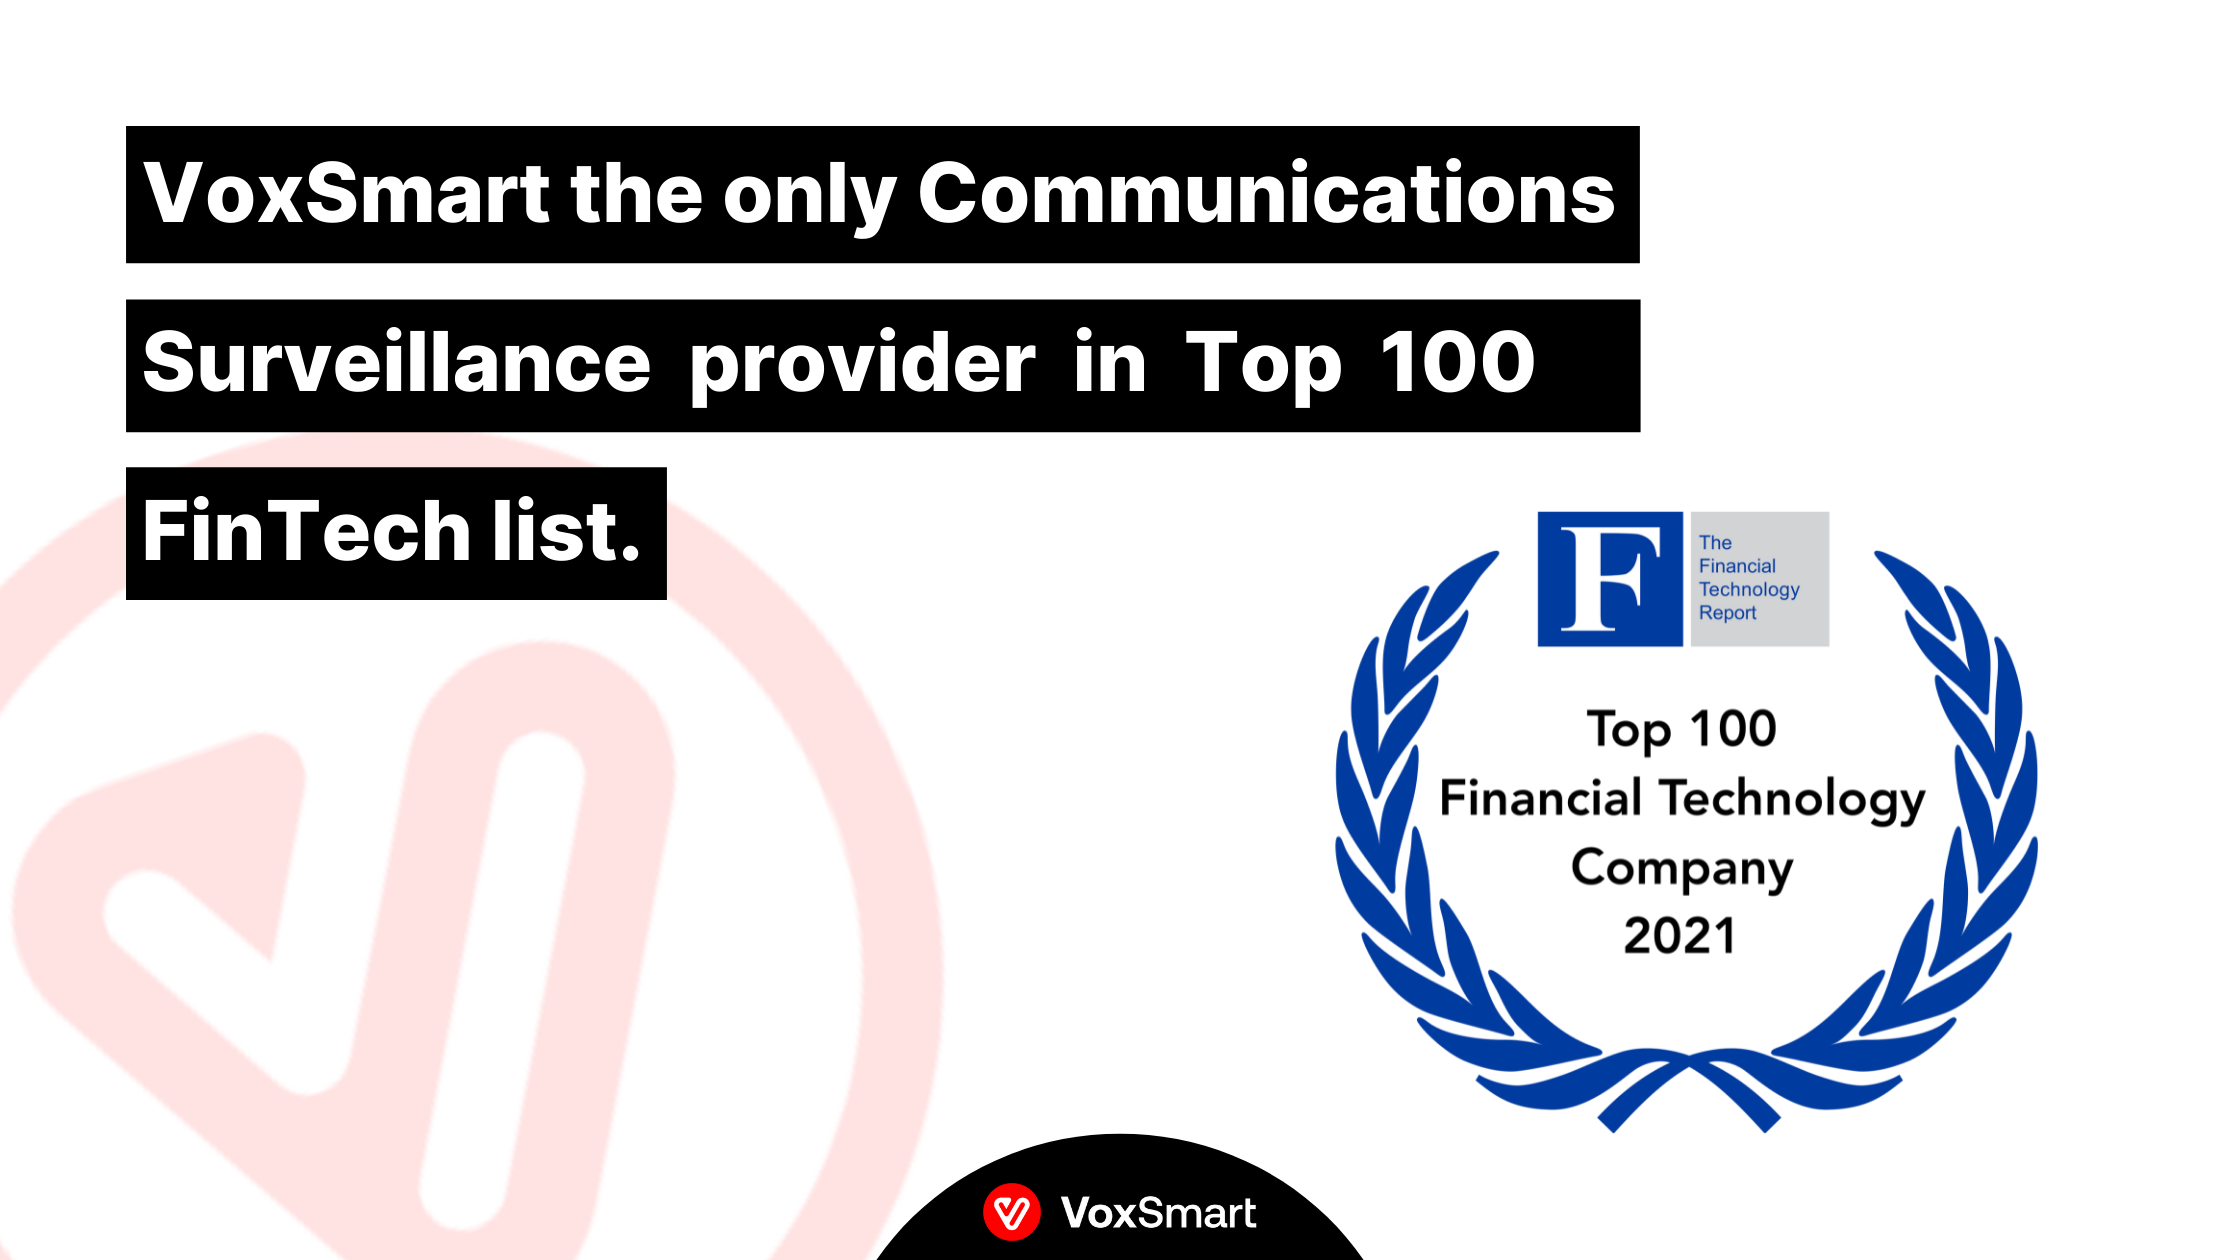 VoxSmart in top 100 Financial Technology Companies as only Communications Surveillance provider